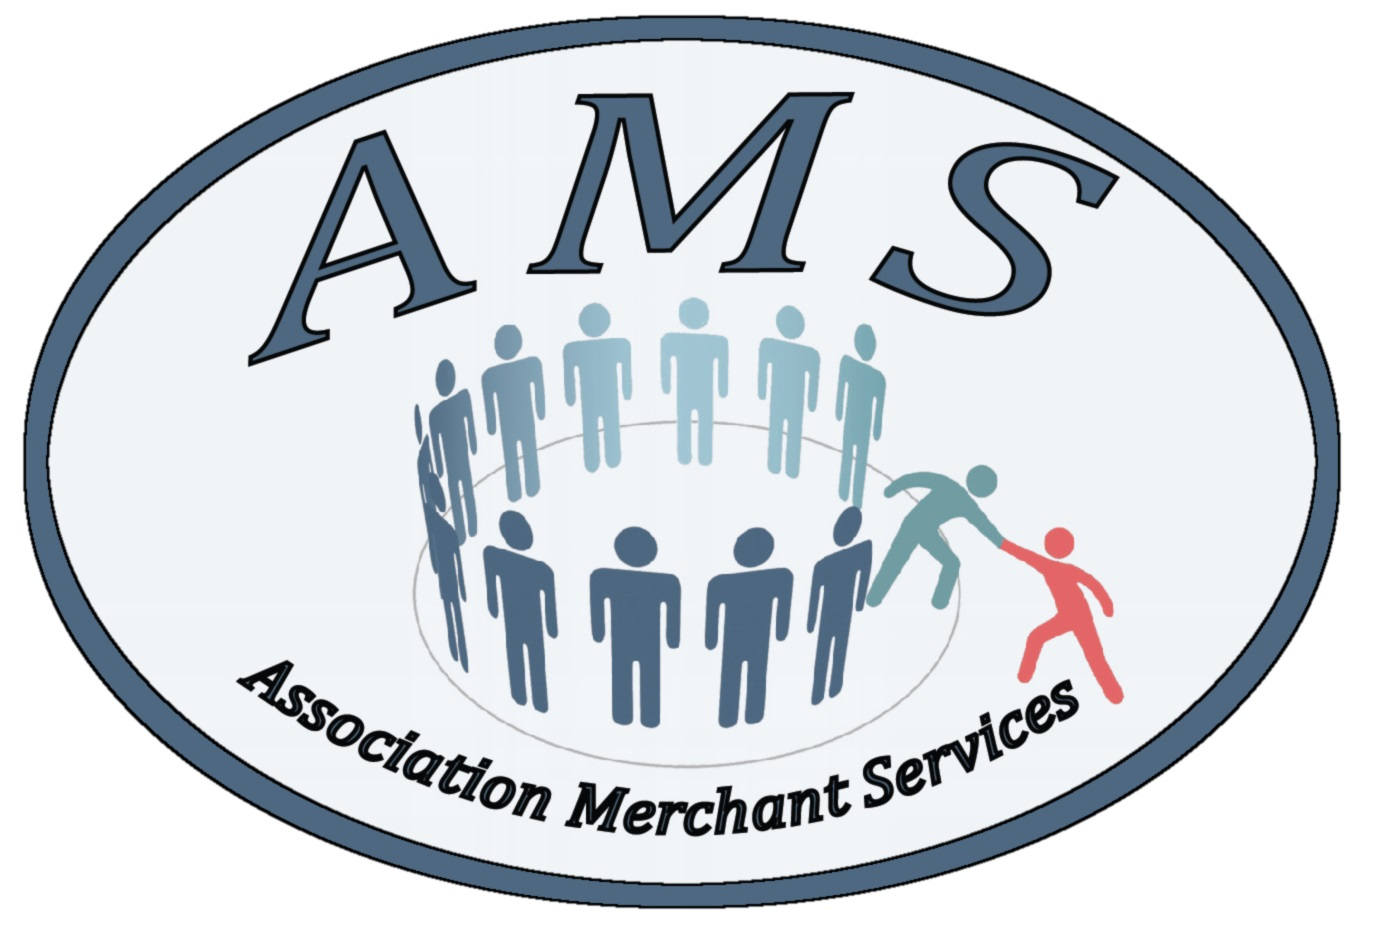 AMS (Association Merchant Services)